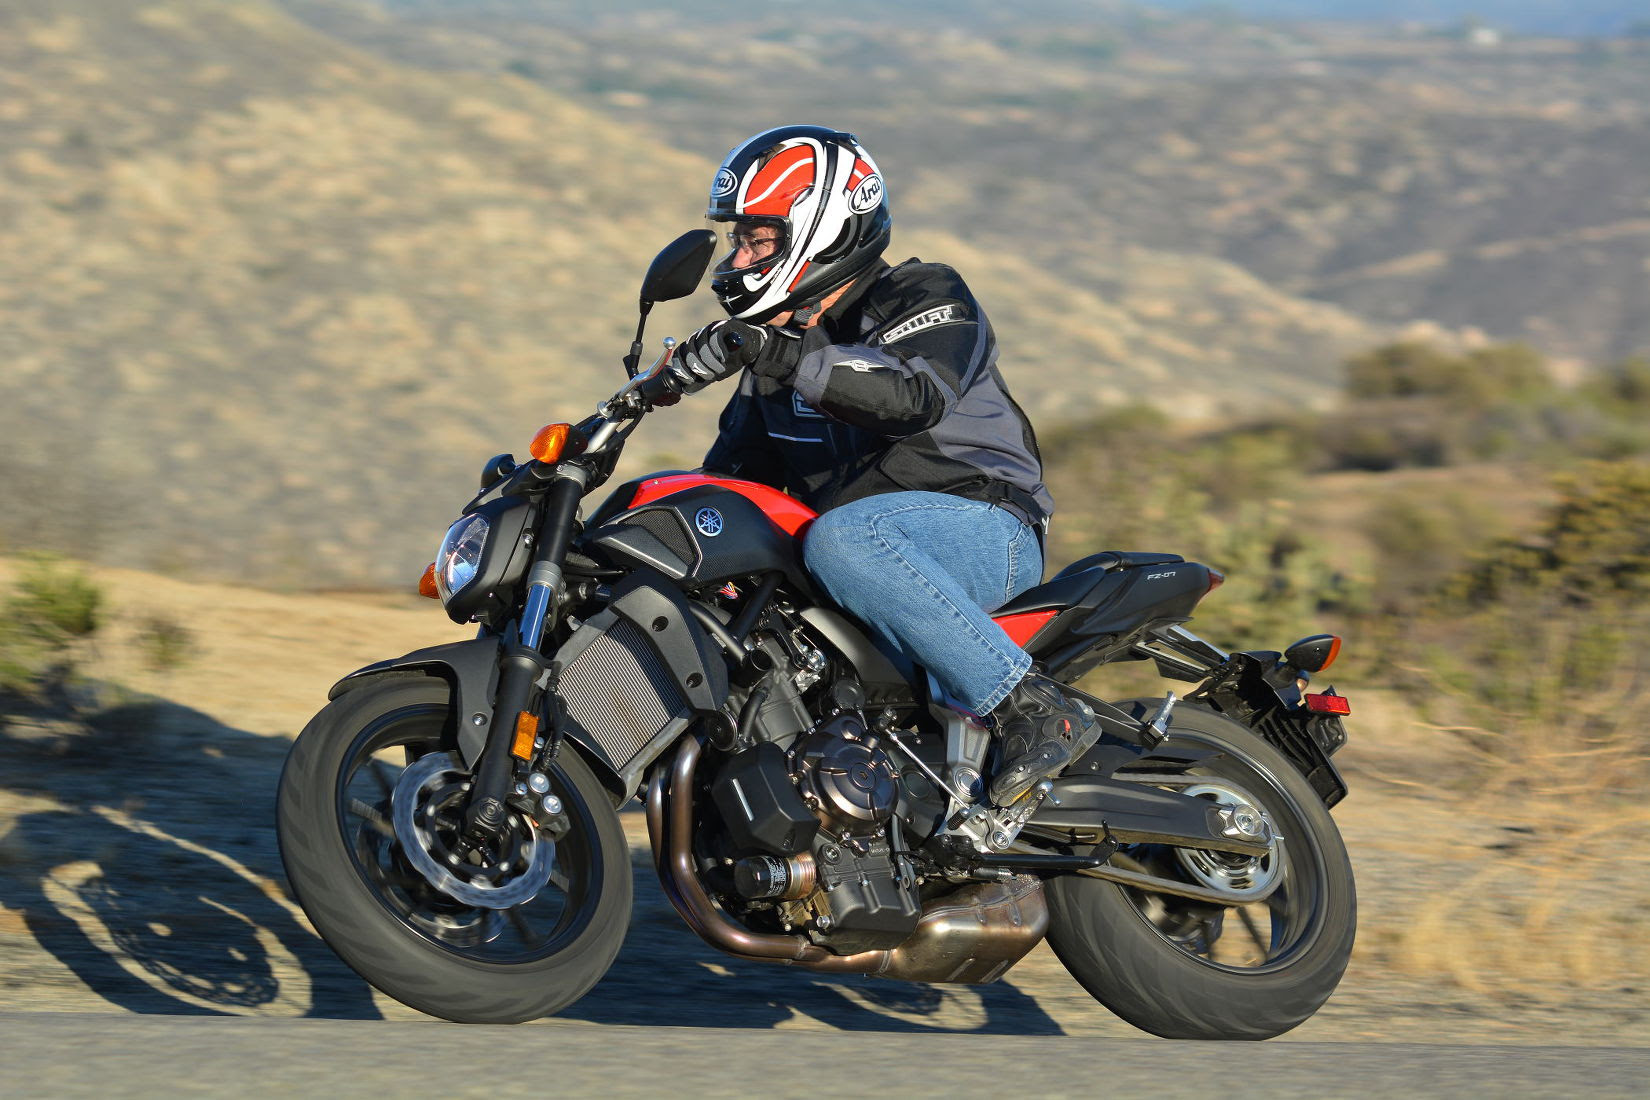 2015 Yamaha Fz 07 Md Ride Review Motorcycledailycom